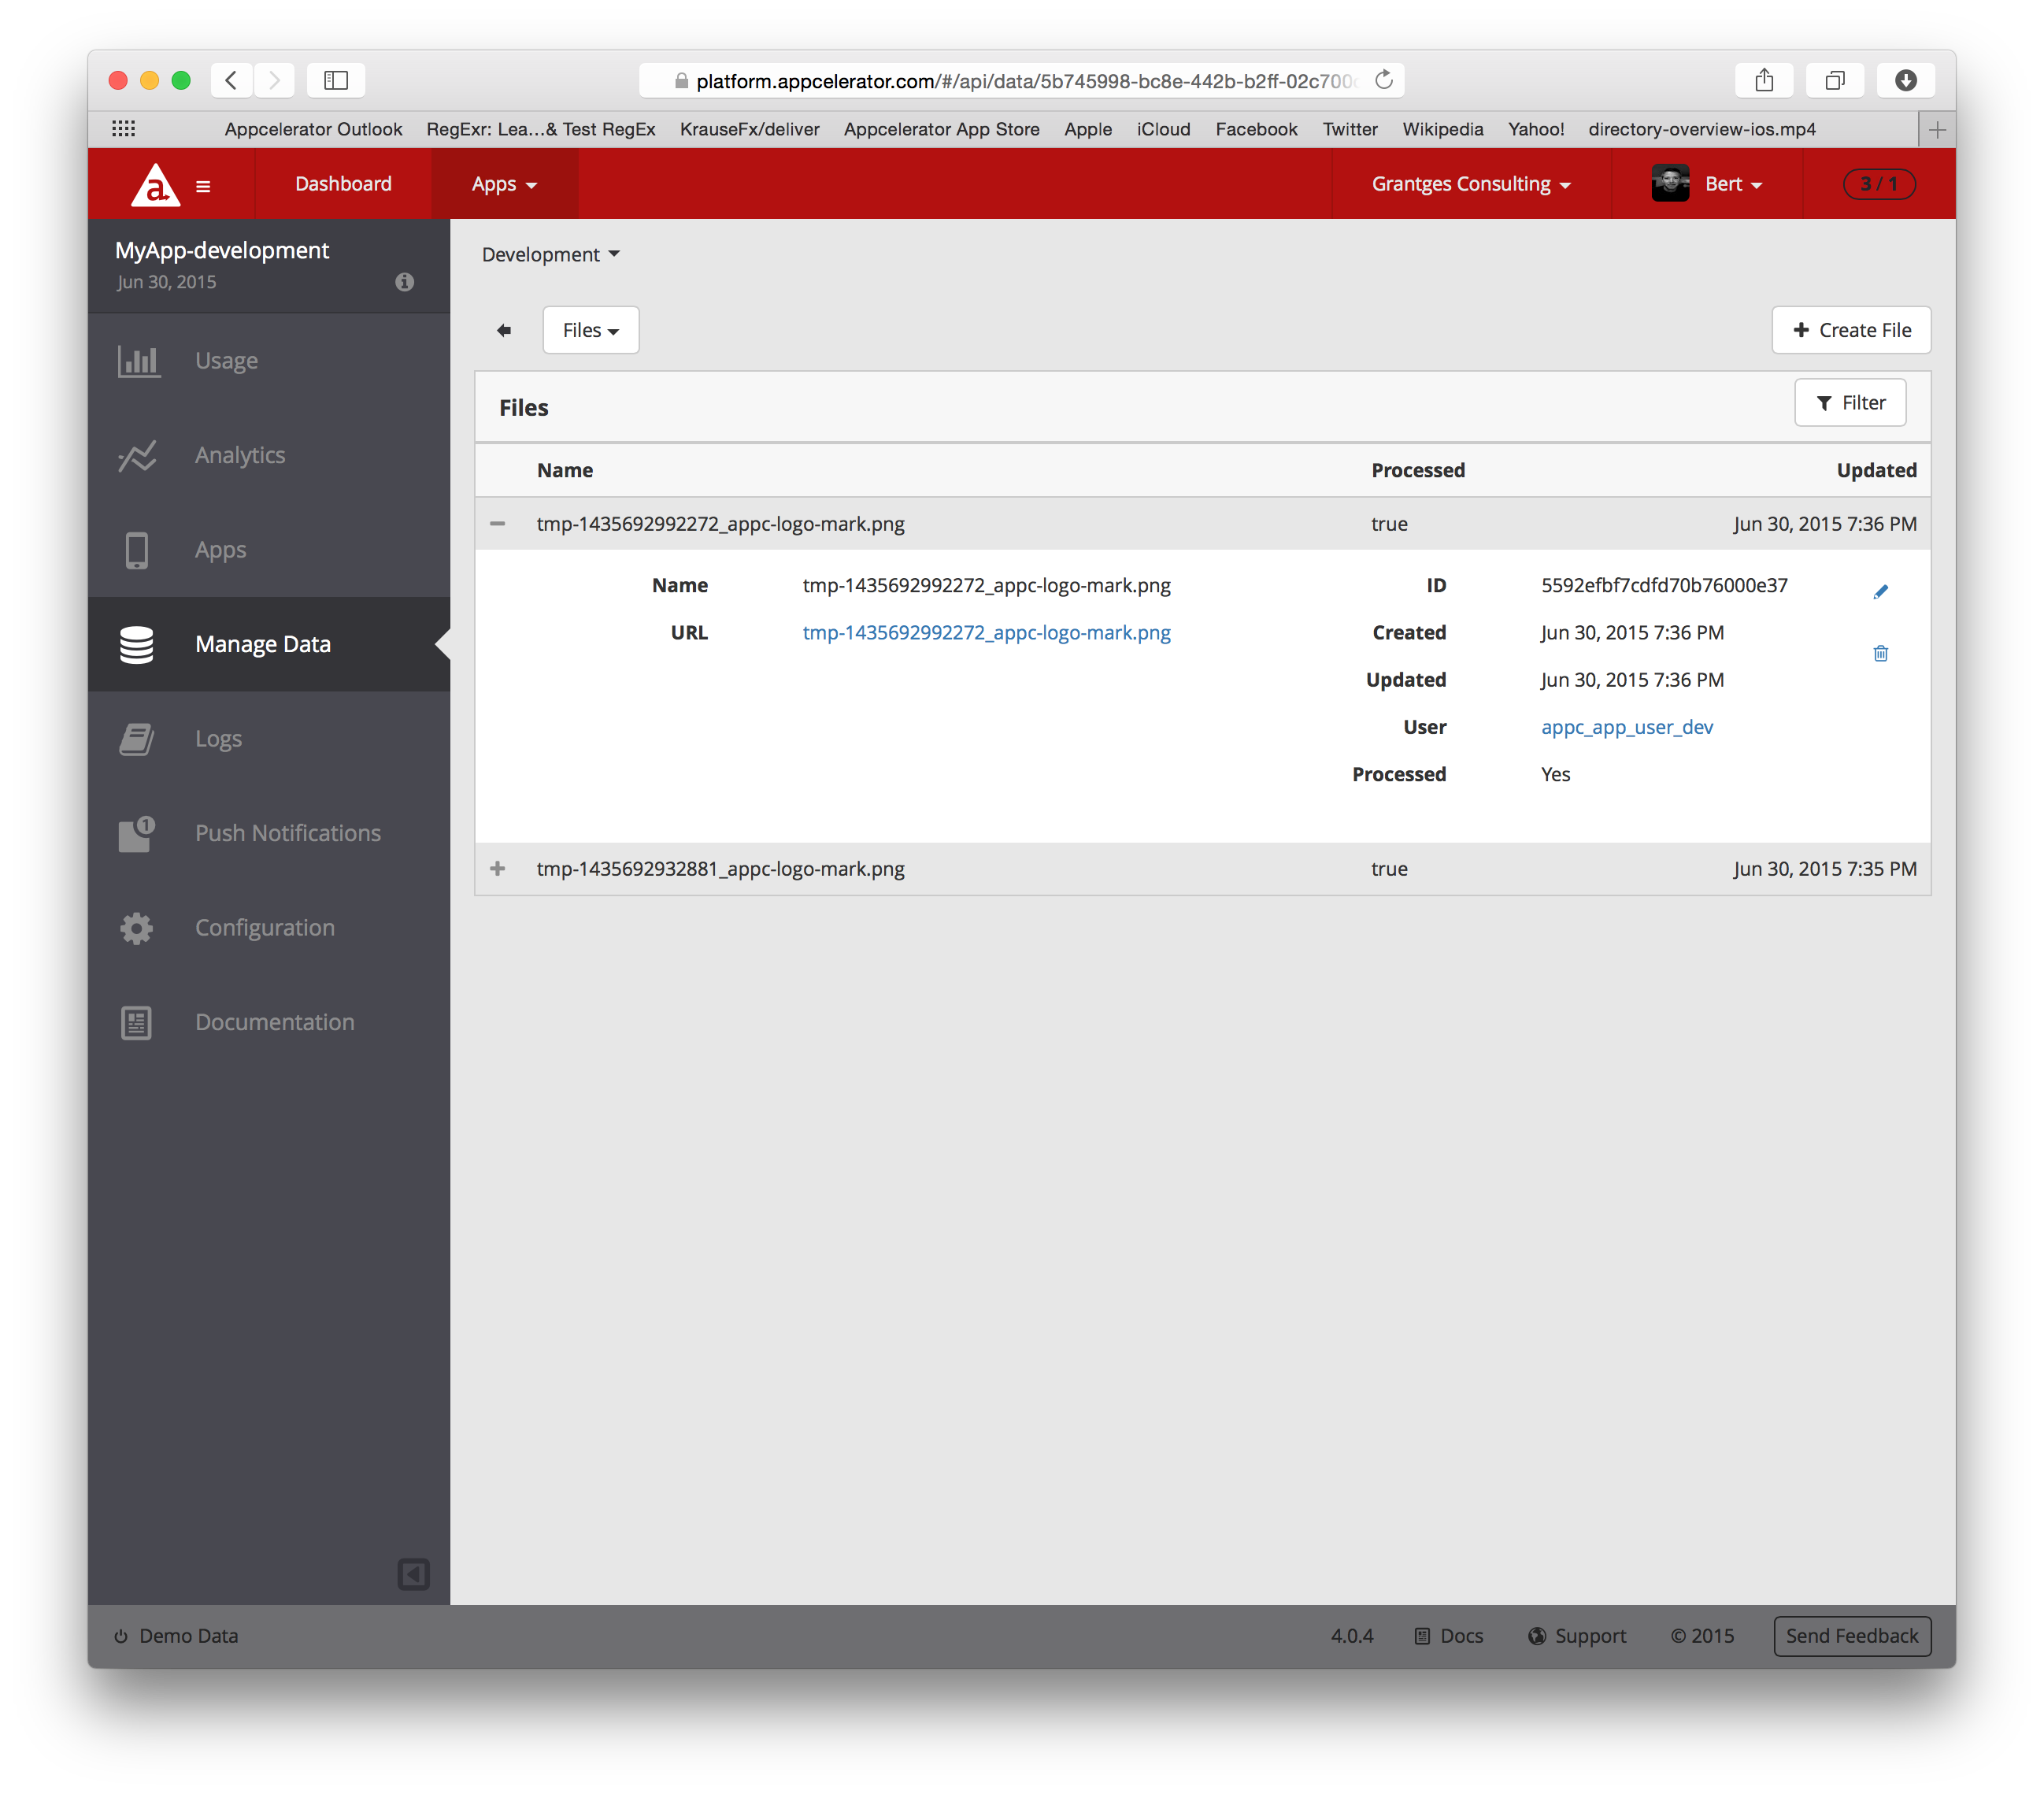 Appcelerator Dashboard Files View